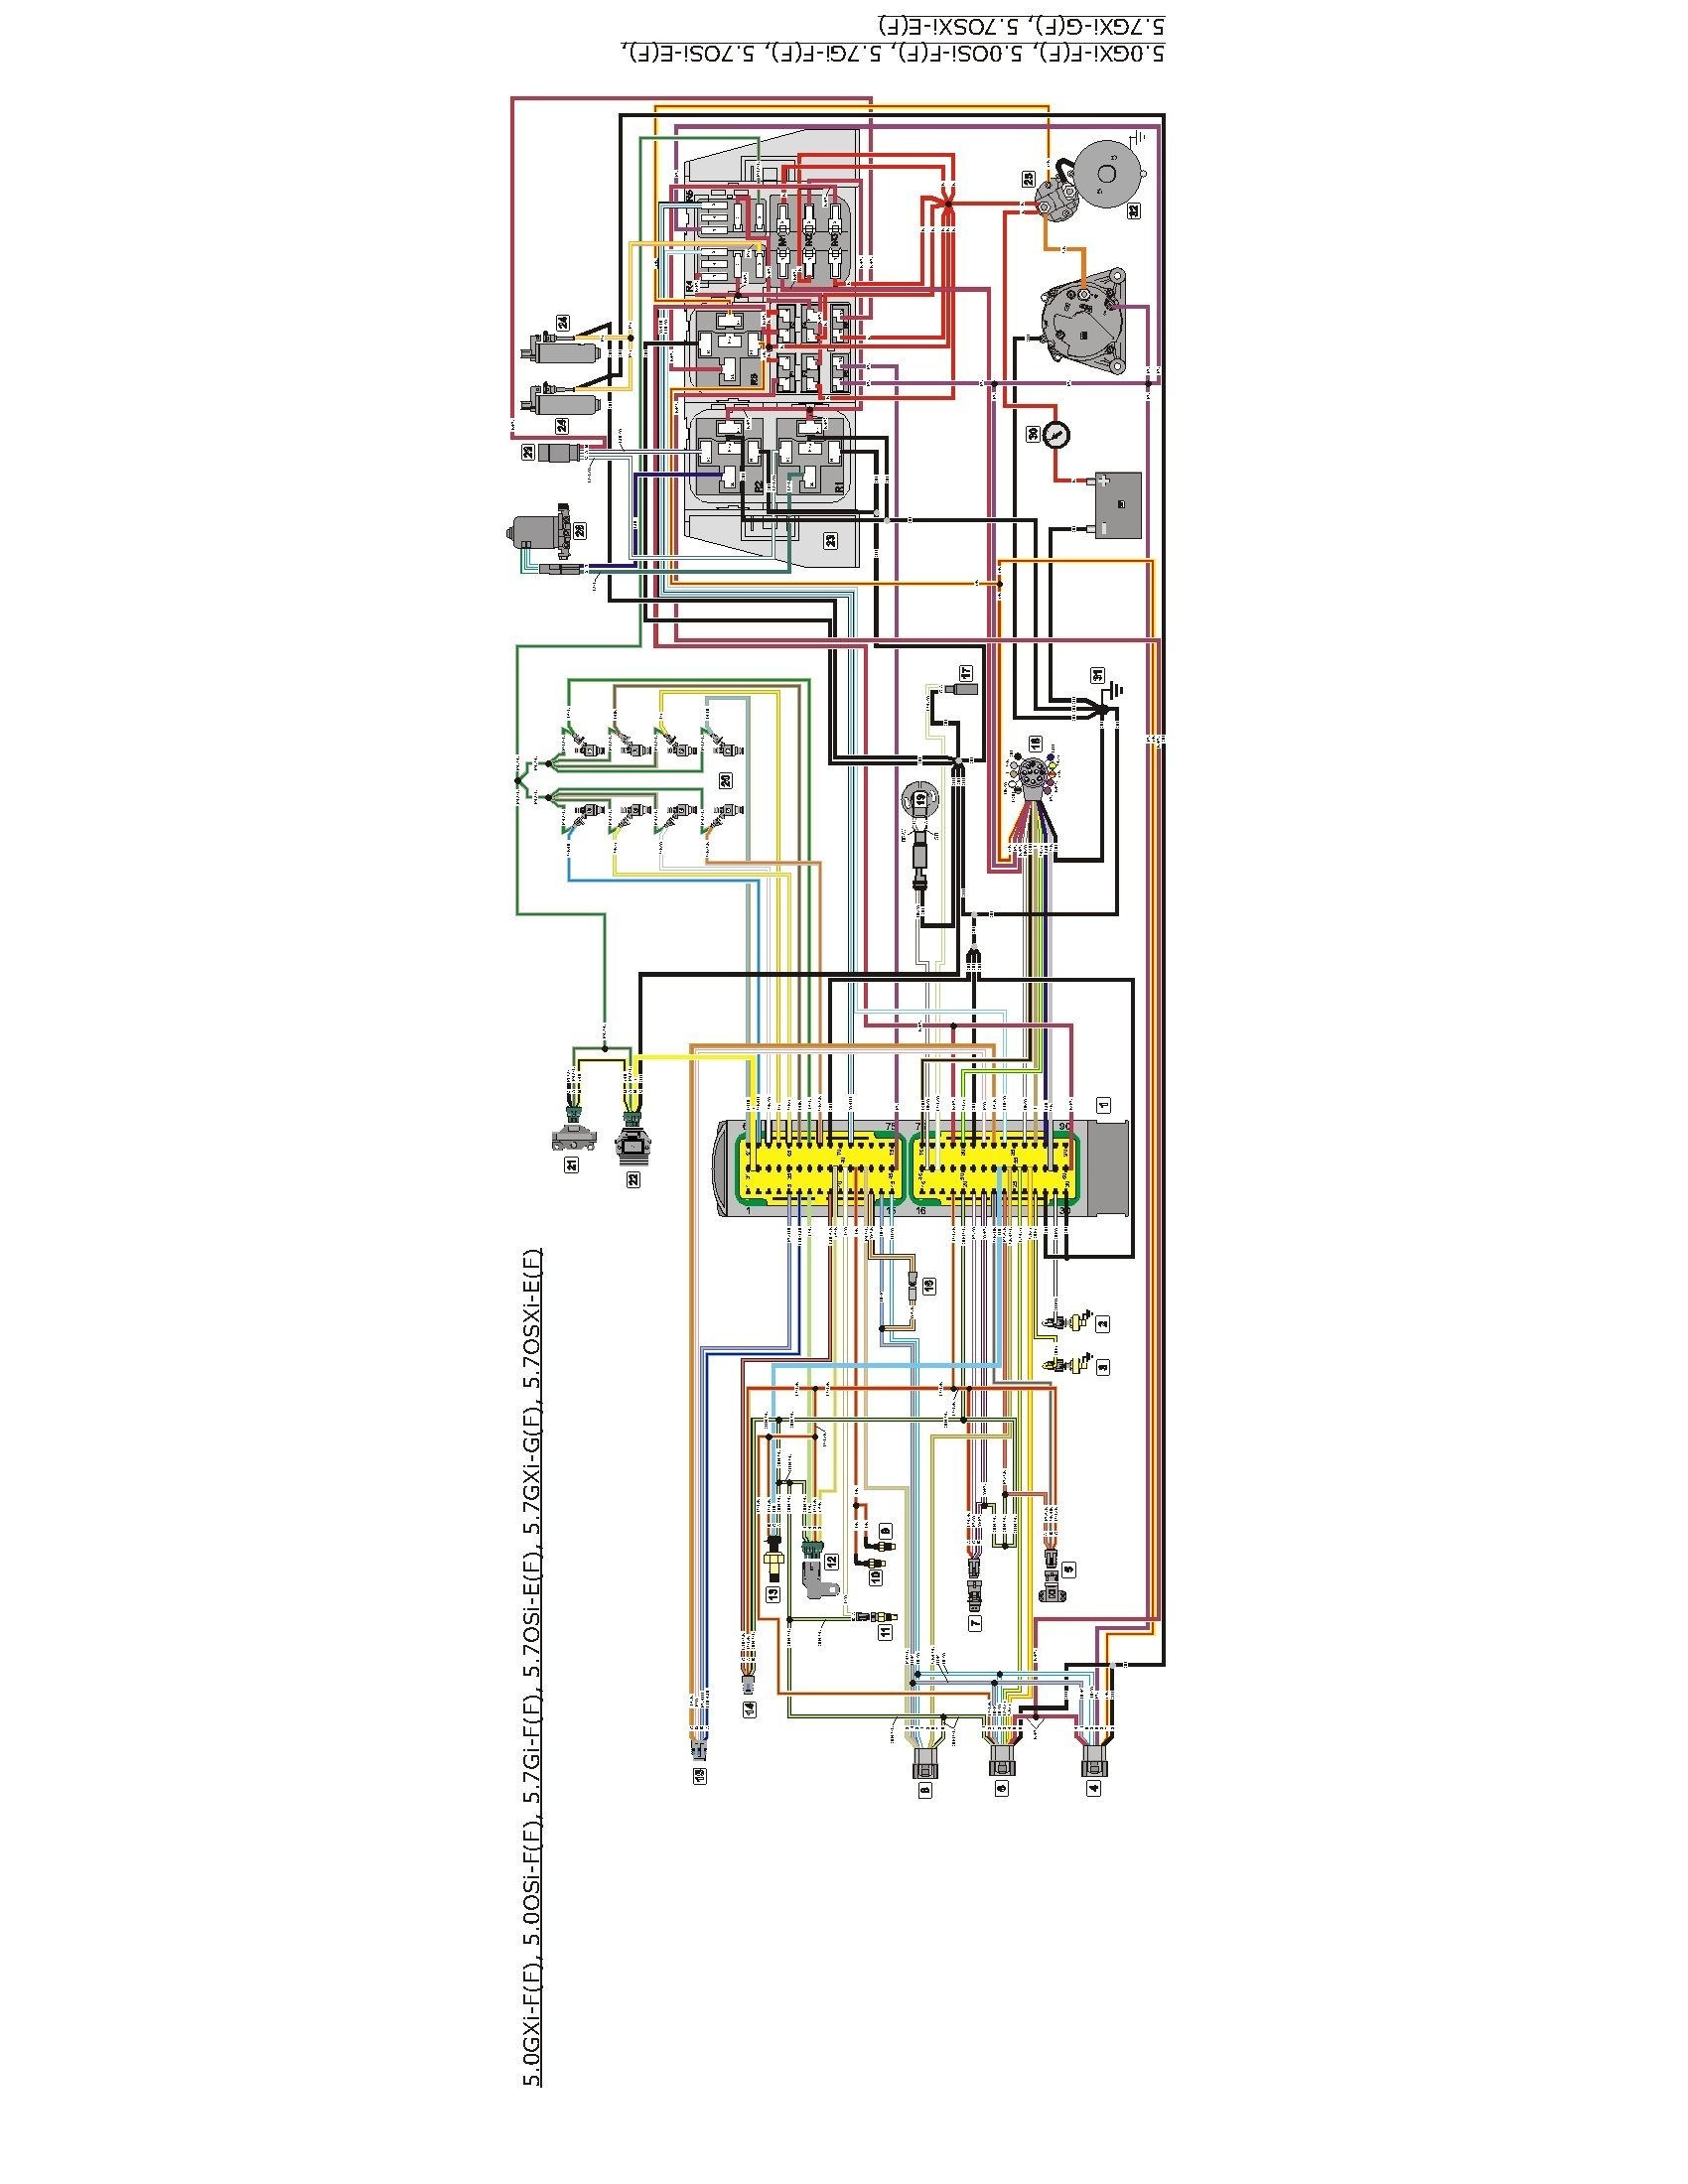 Enjoyable Volvo B58 Wiring Diagram Online Wiring Diagram Wiring Cloud Licukosporaidewilluminateatxorg